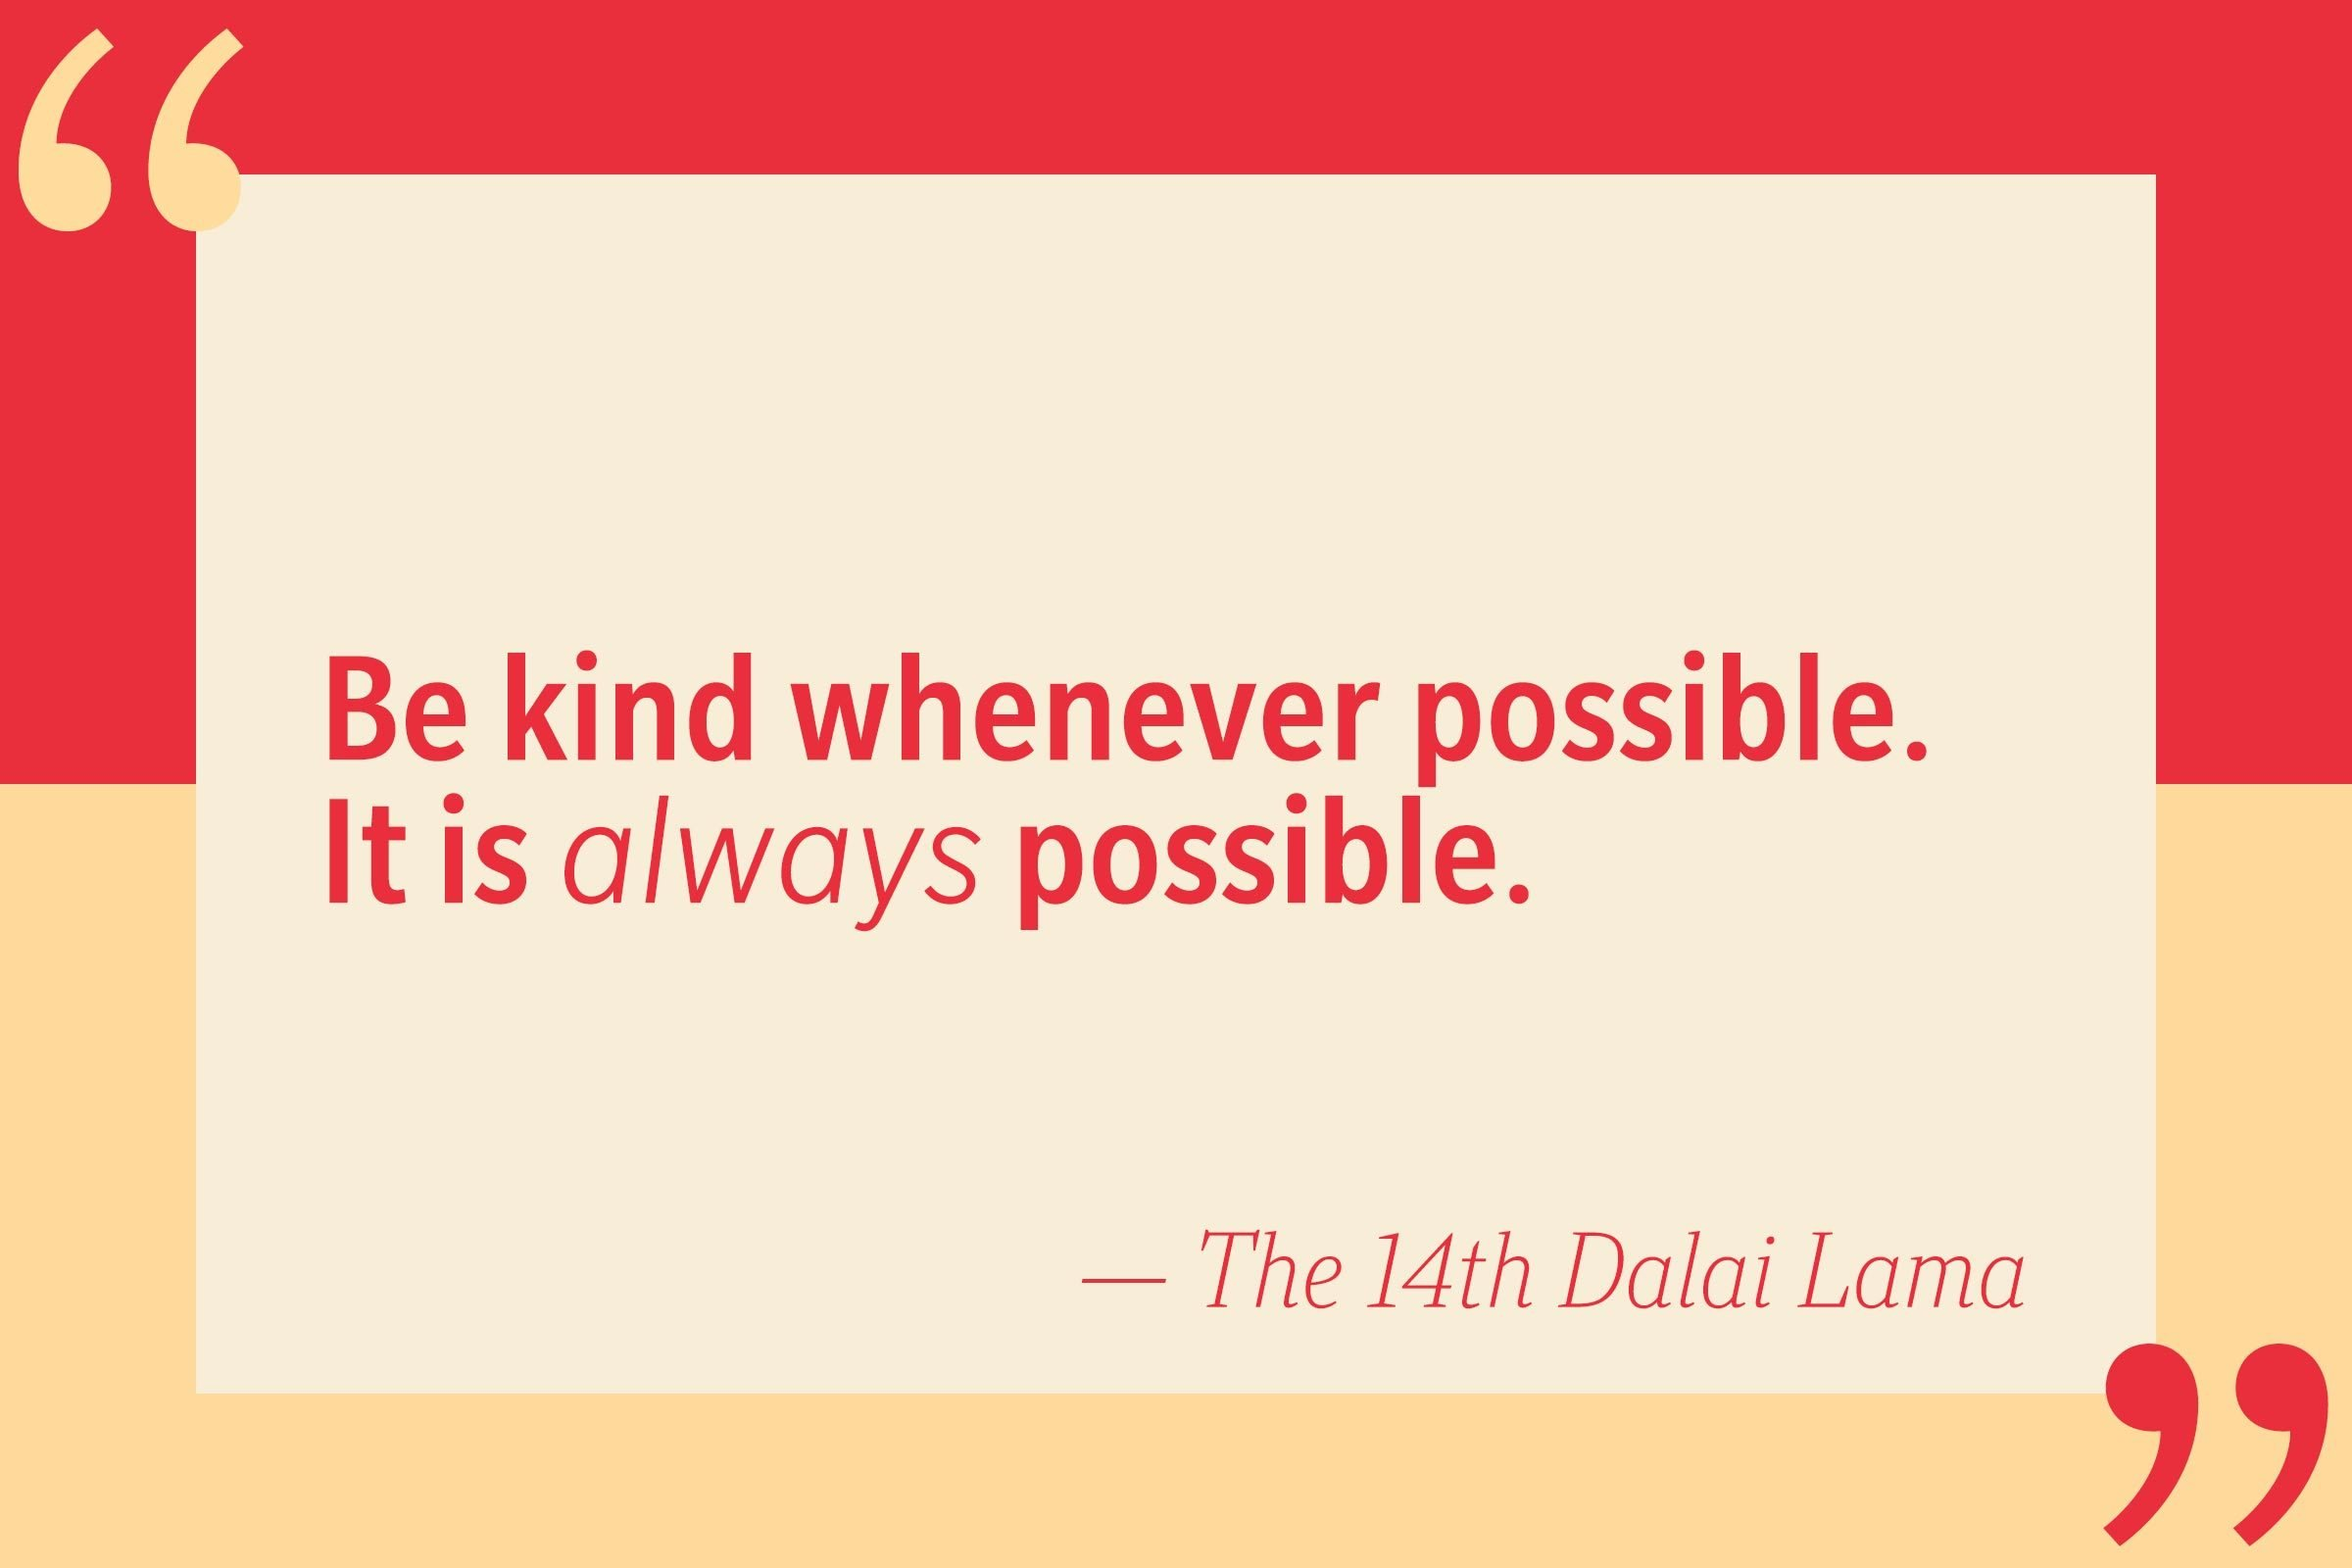 Be kind whenever possible. It is always possible. — The 14th Dalai Lama